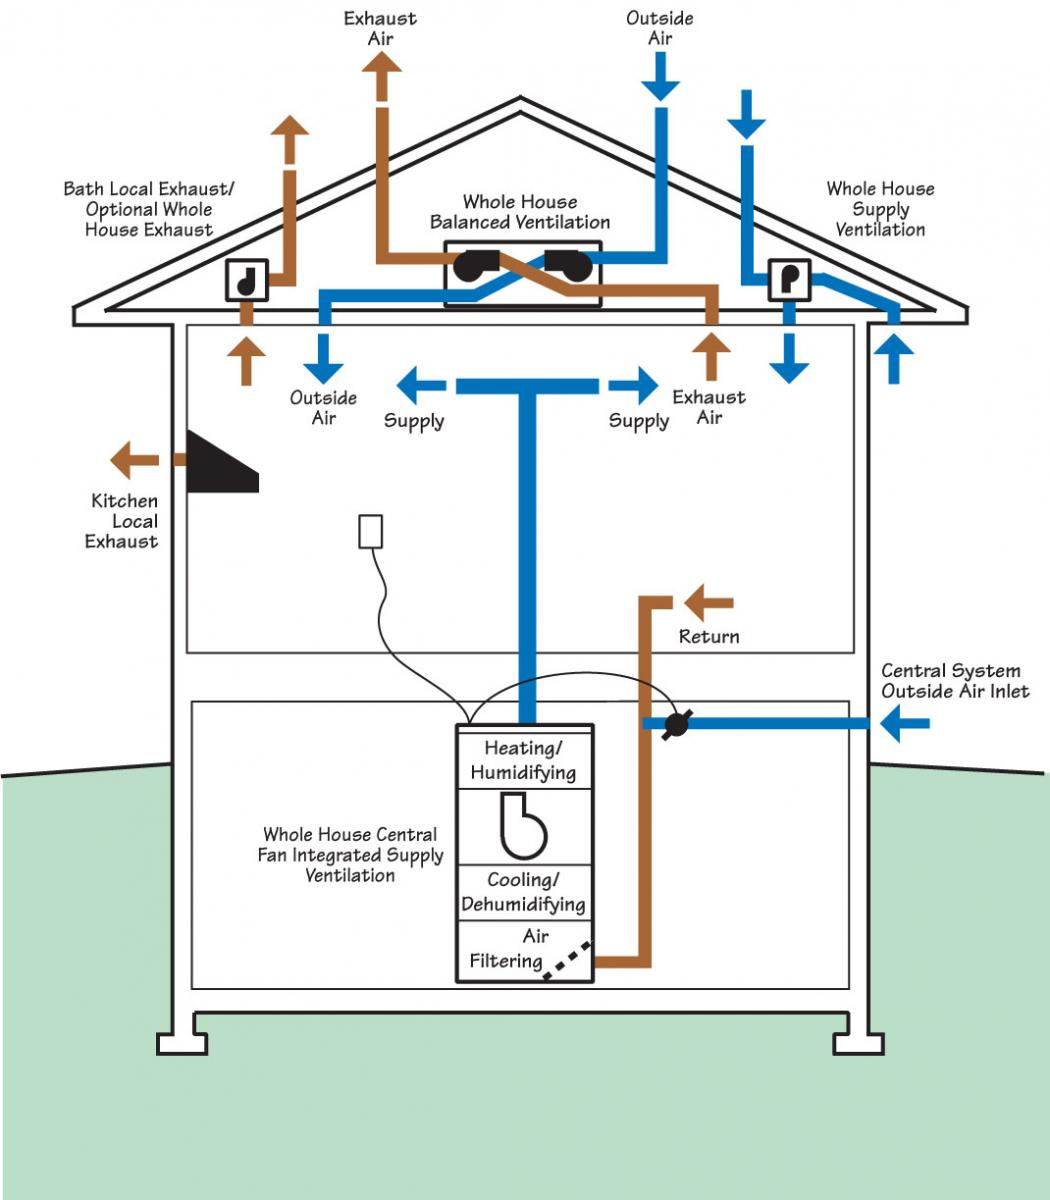 Pre Retrofit Assessment Of Ventilation Systems Building America Hvac Duct Drawing Example System